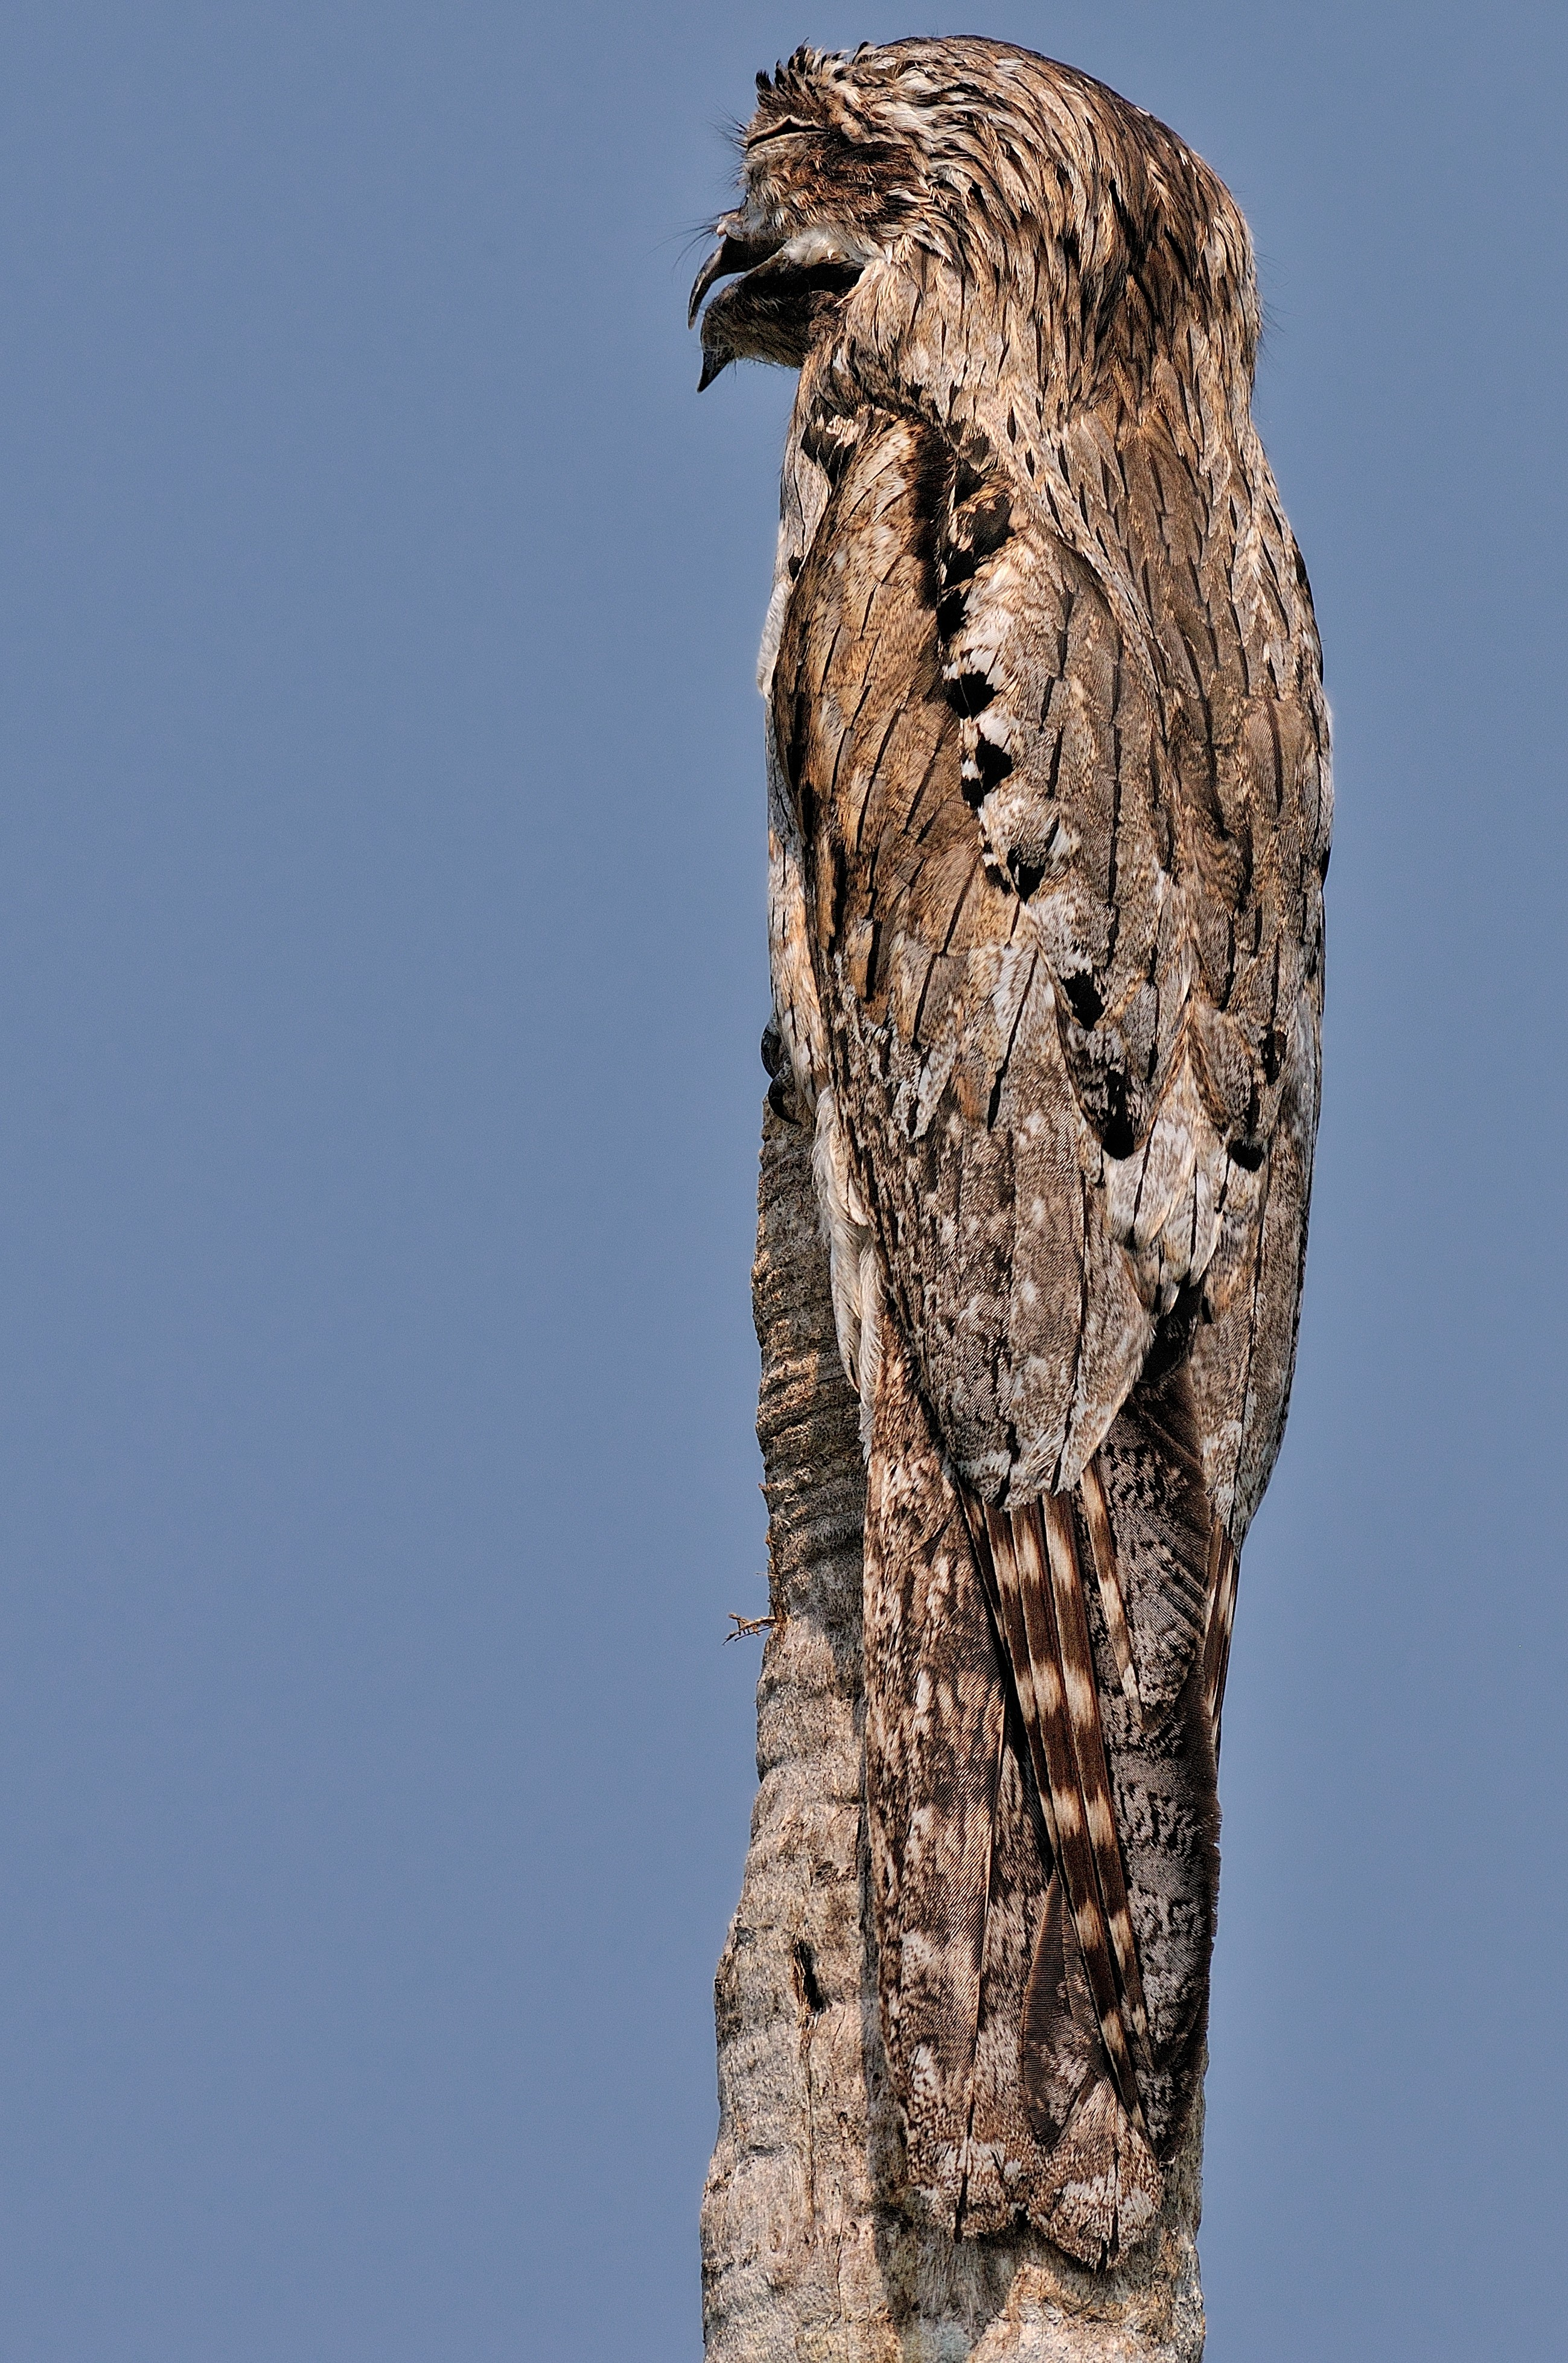 Can you spot the owl hiding in these pictures?